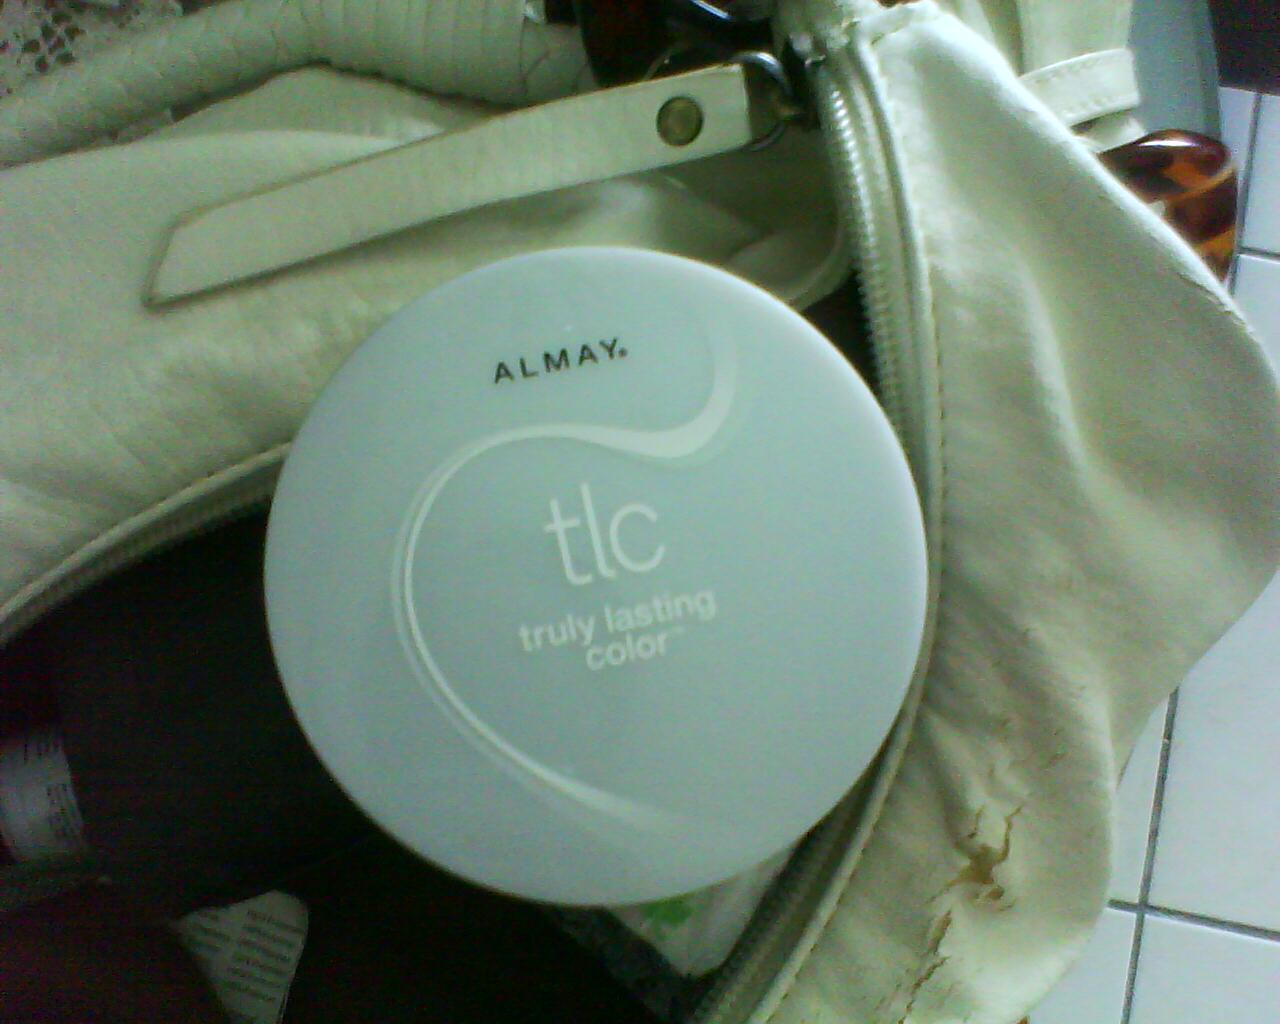 Review: Almay TLC Pressed Powder